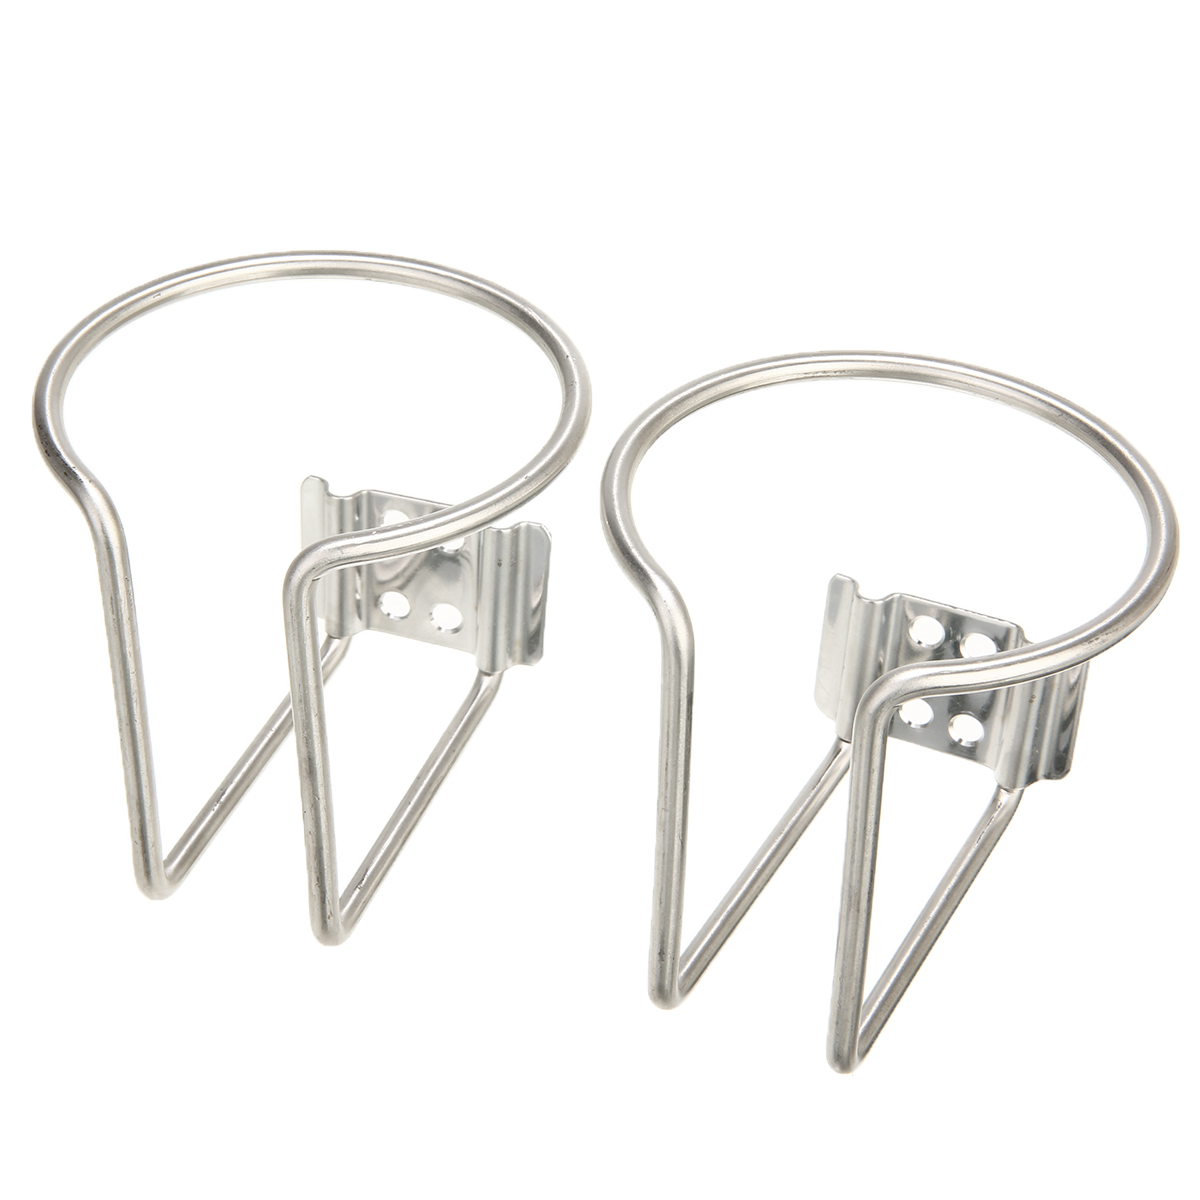 2pc Ring Cup Drink Holder Stainless Steel For Marine Boat Yacht Truck RV Drinking Cup Holder High Quality in Drinks Holders from Automobiles Motorcycles